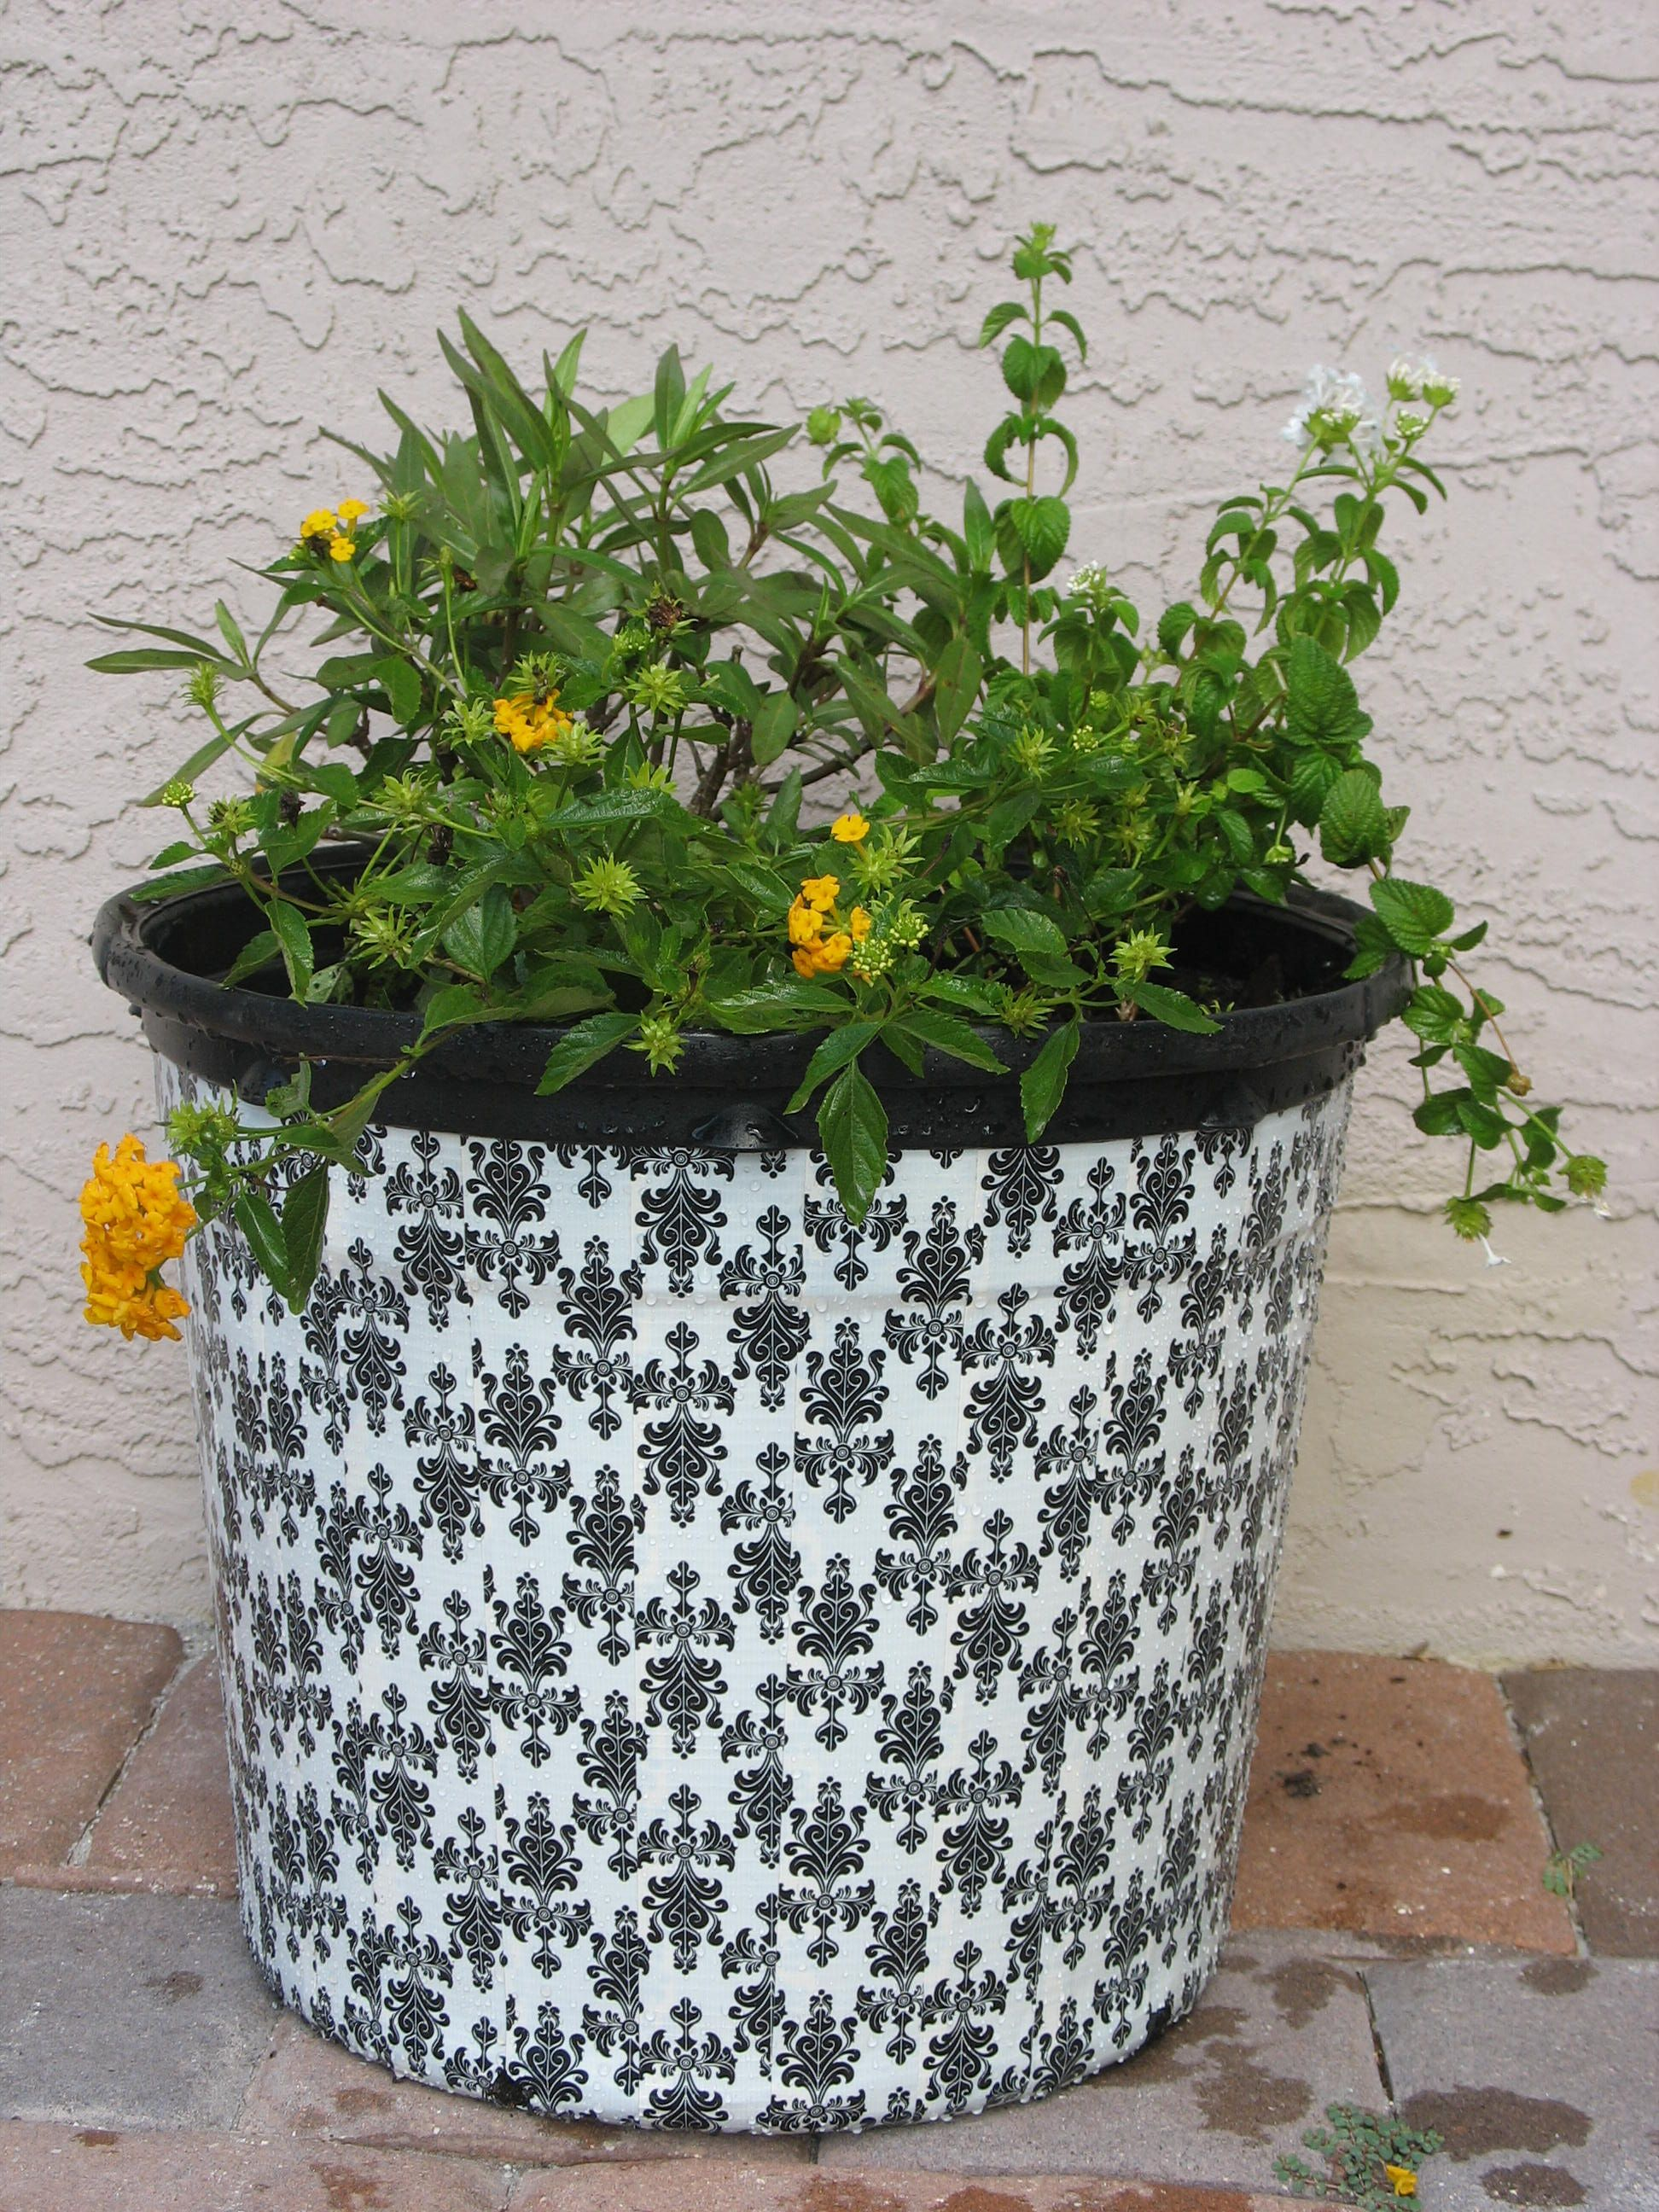 Cheap container gardening duct tape planters lettuce share cheap container gardening duct tape planters lettuce share izmirmasajfo